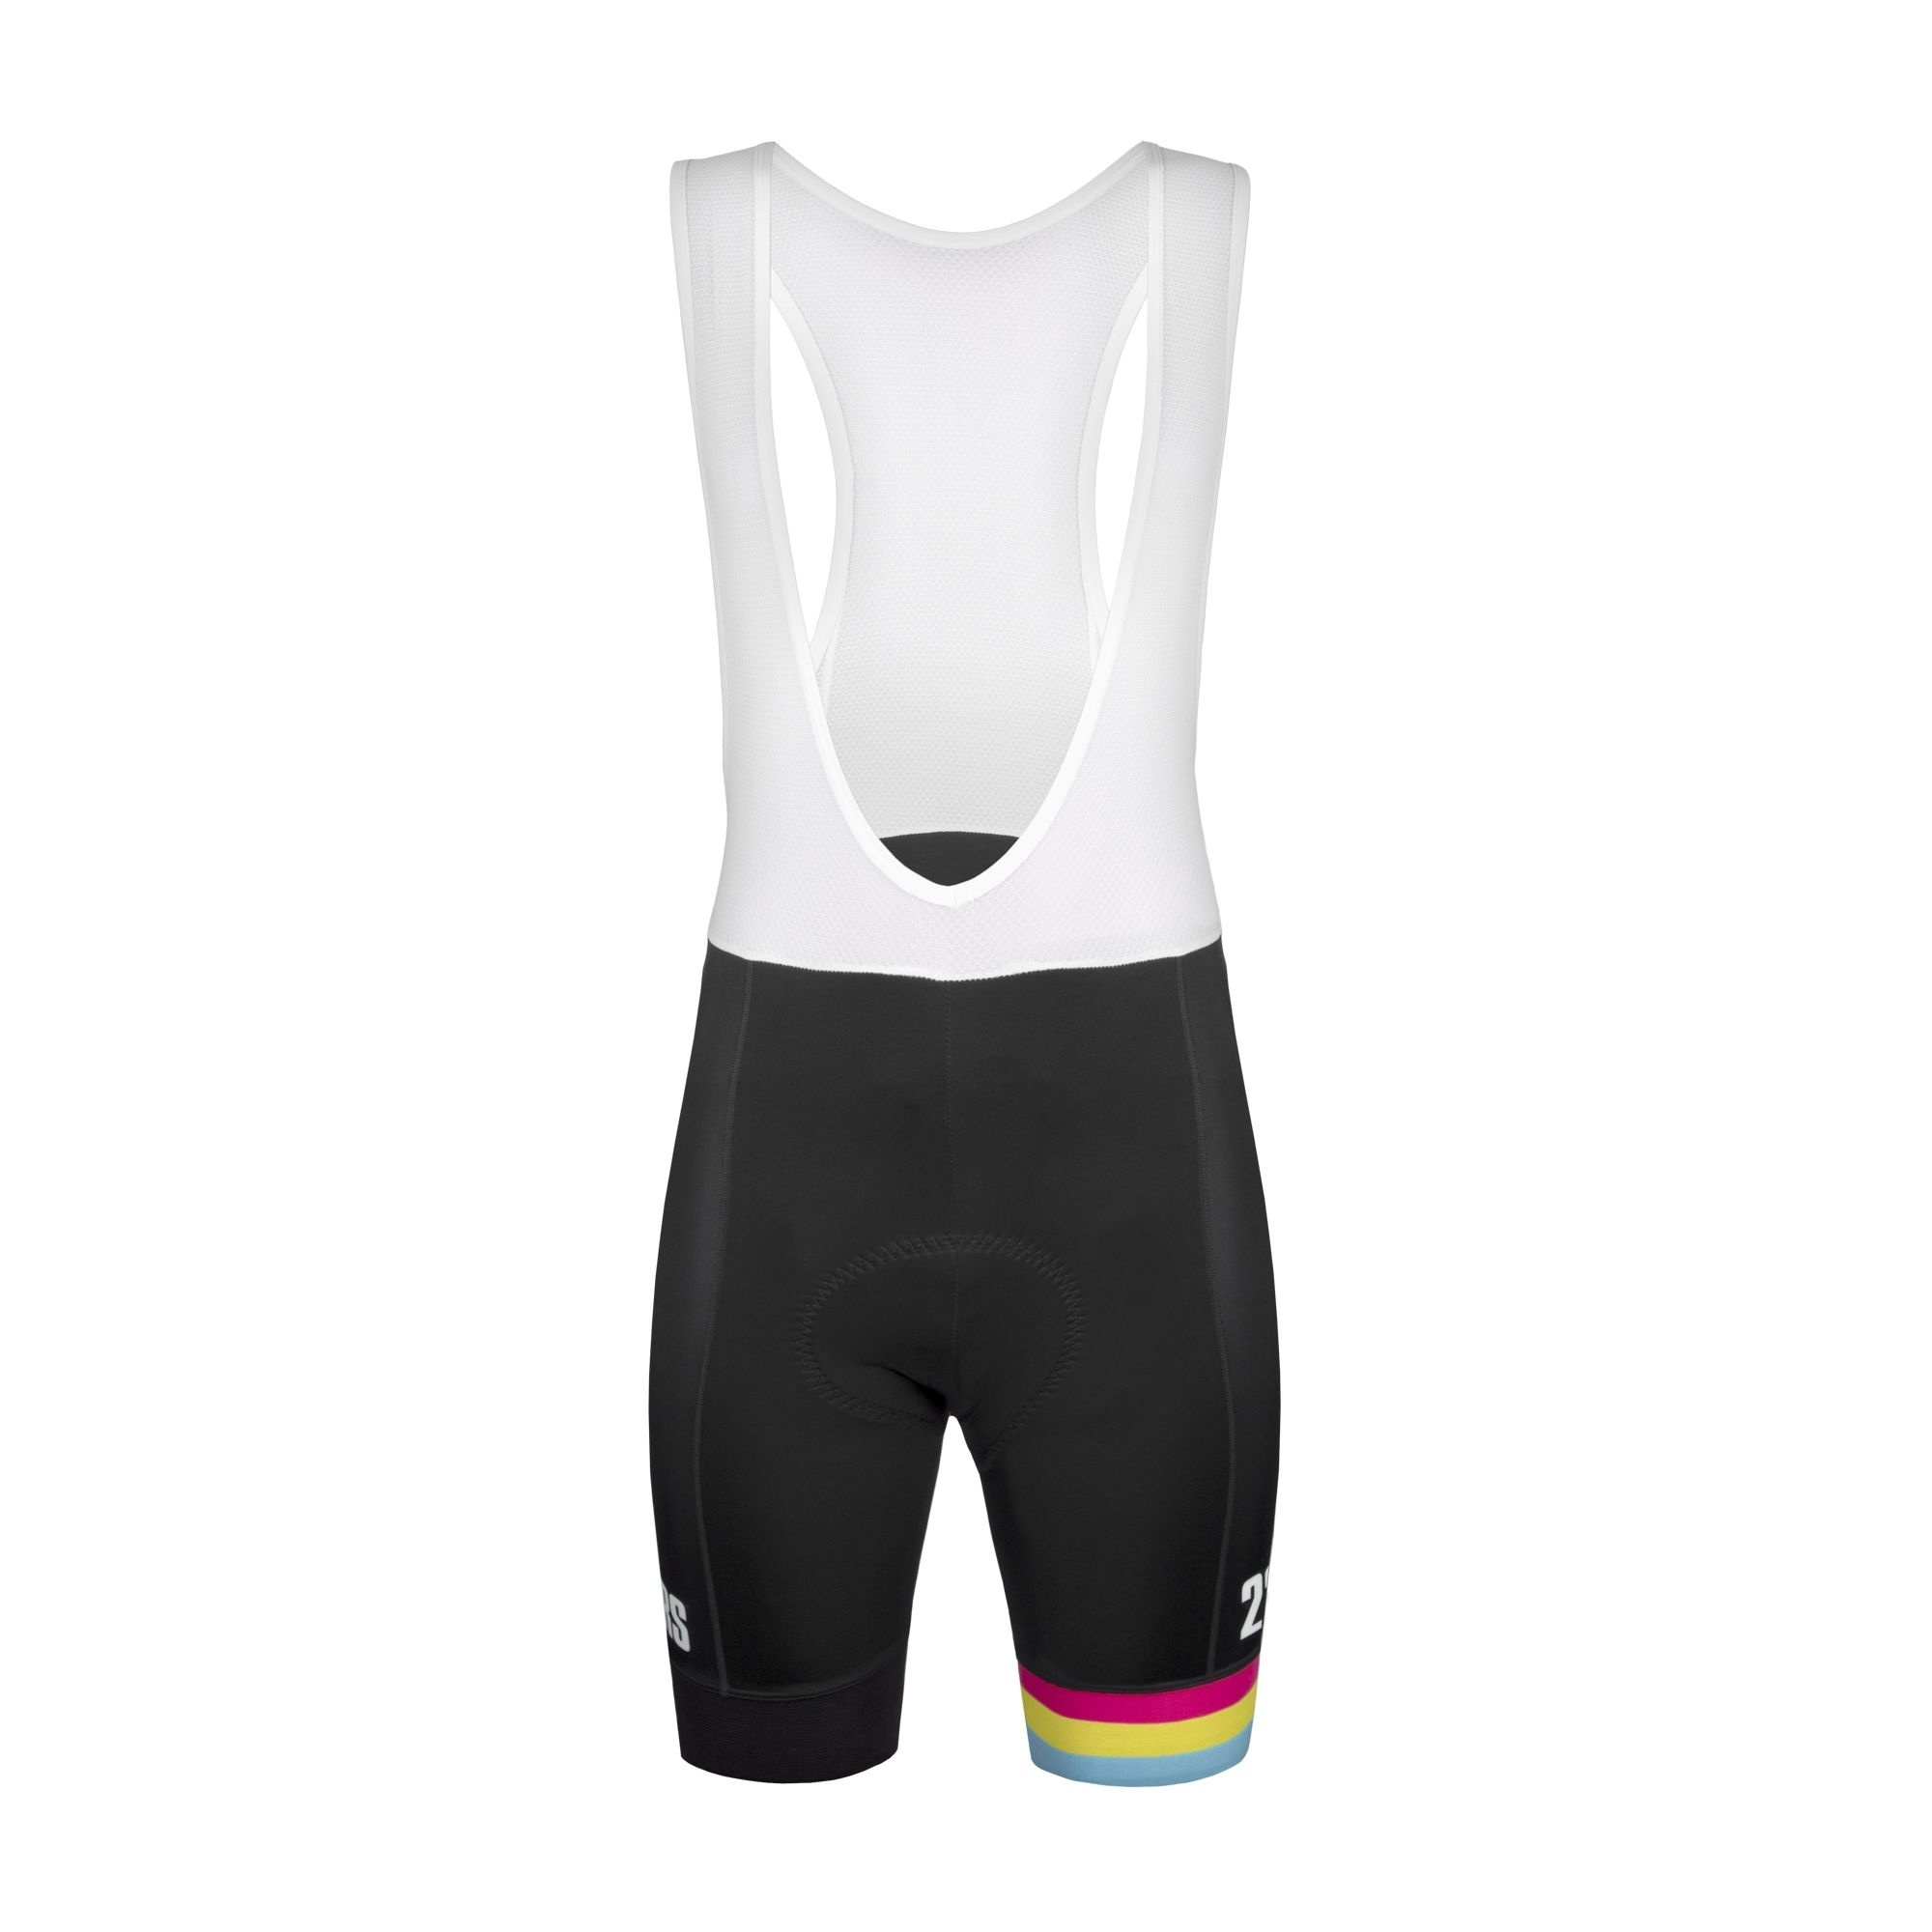 226ERS | Cycling Bib Short | Hydrazero-1